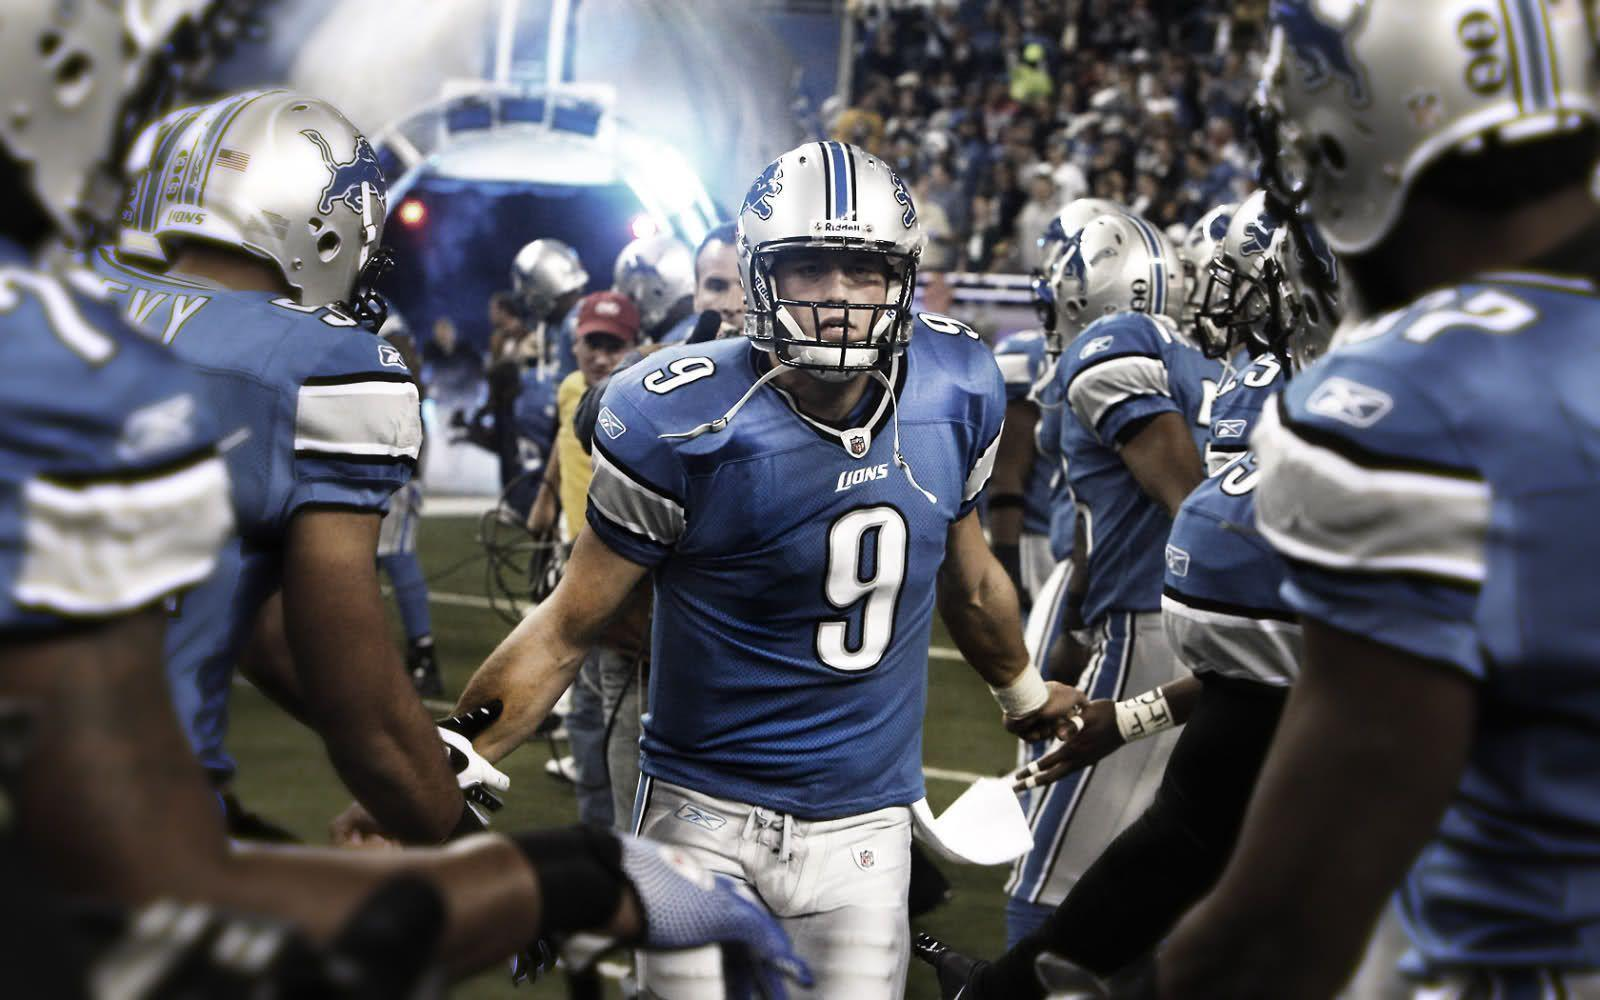 Calvin Johnson Hd Wallpaper Matthew Stafford Wallpapers Wallpaper Cave